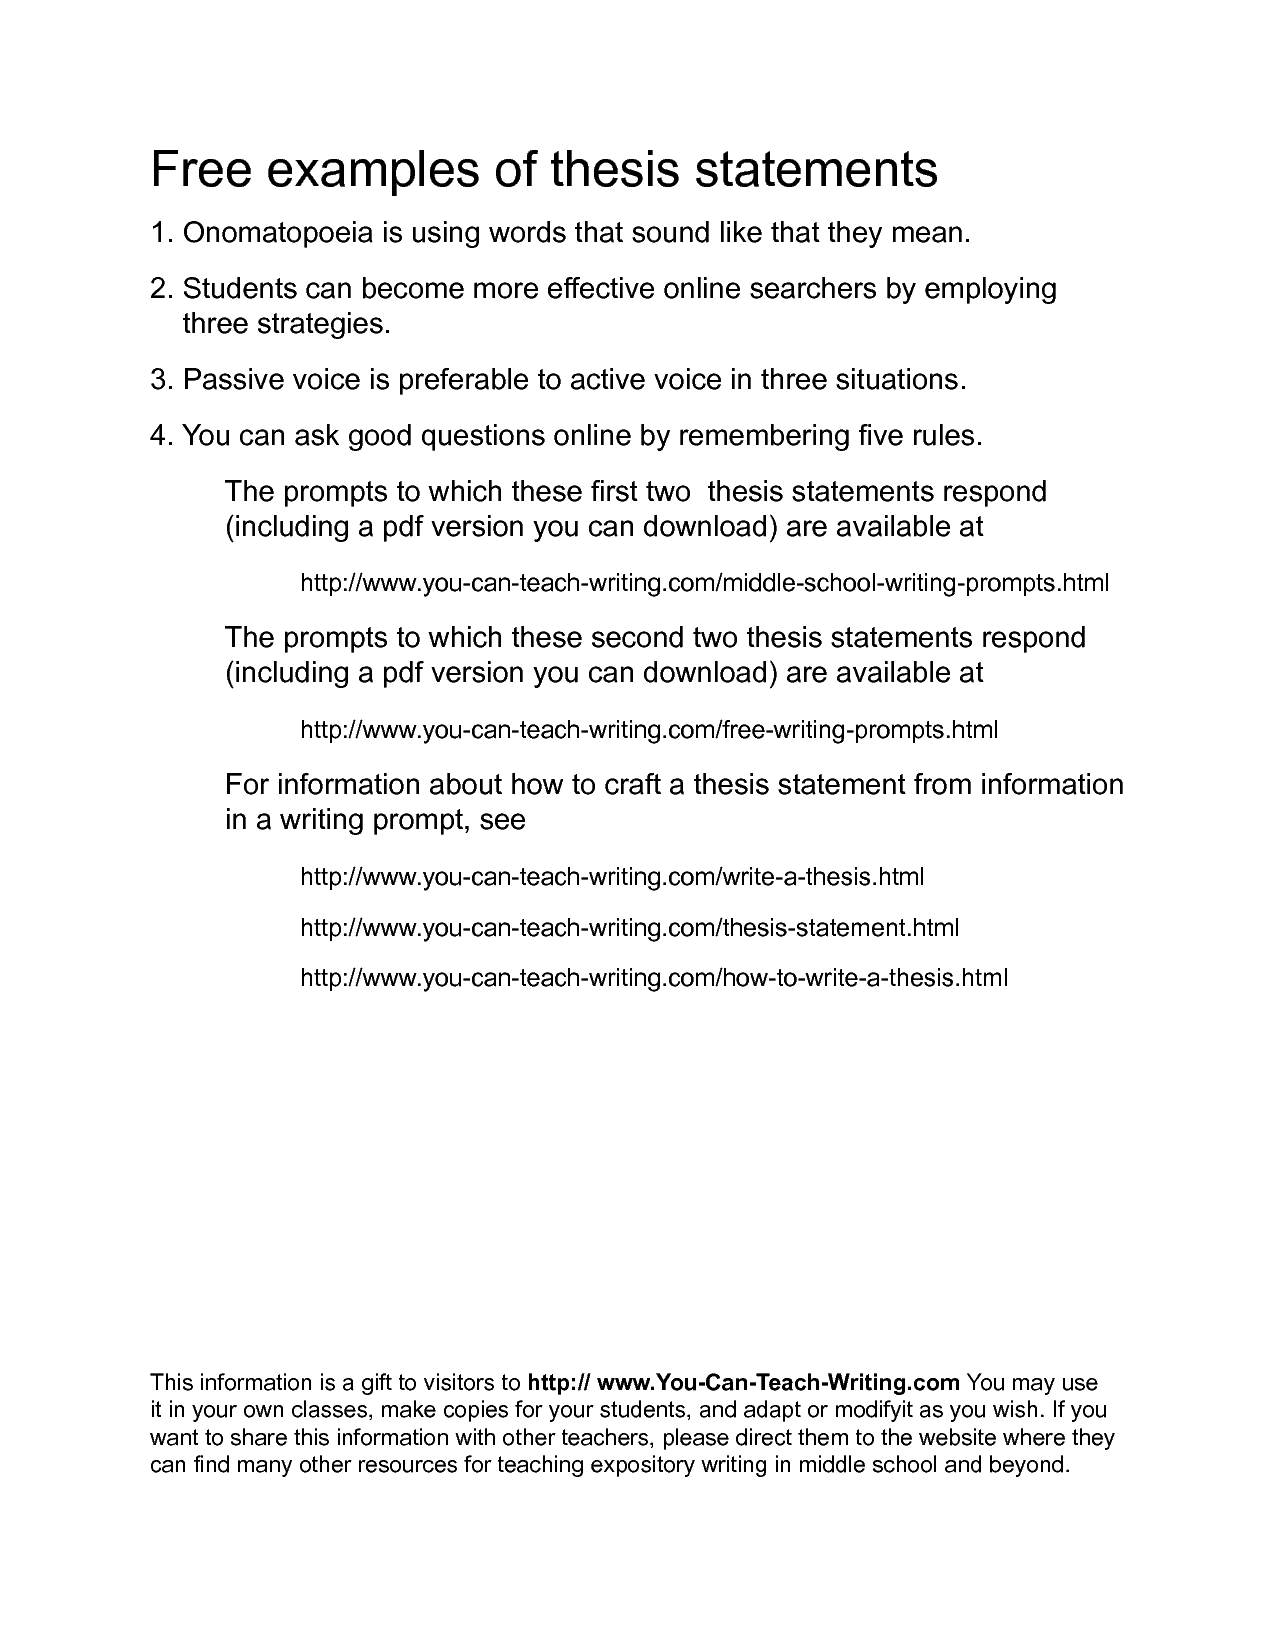 Compare And Contrast Essay Topics For High School Students  Healthy Living Essay also How To Write A Good Proposal Essay Purpose Of A Thesis Statement  Thesis  Thesis Statement  Essay About English Language